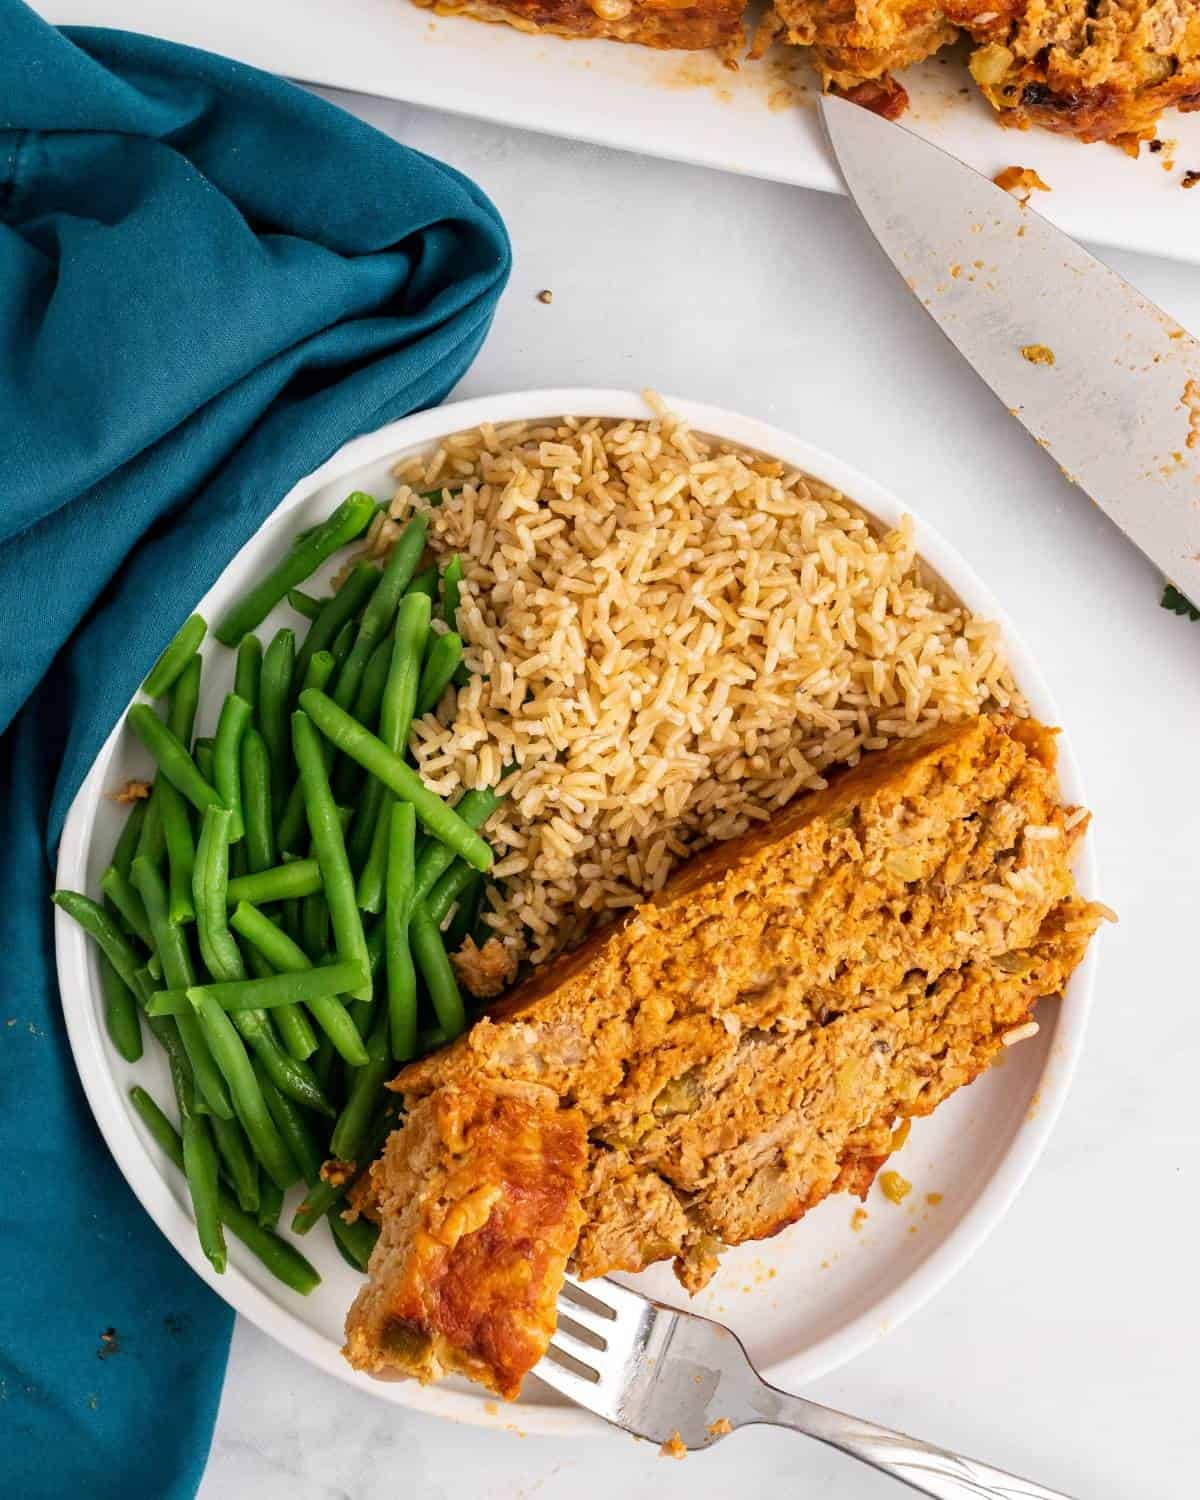 One slice of meatloaf on a plate with green beans and brown rice.